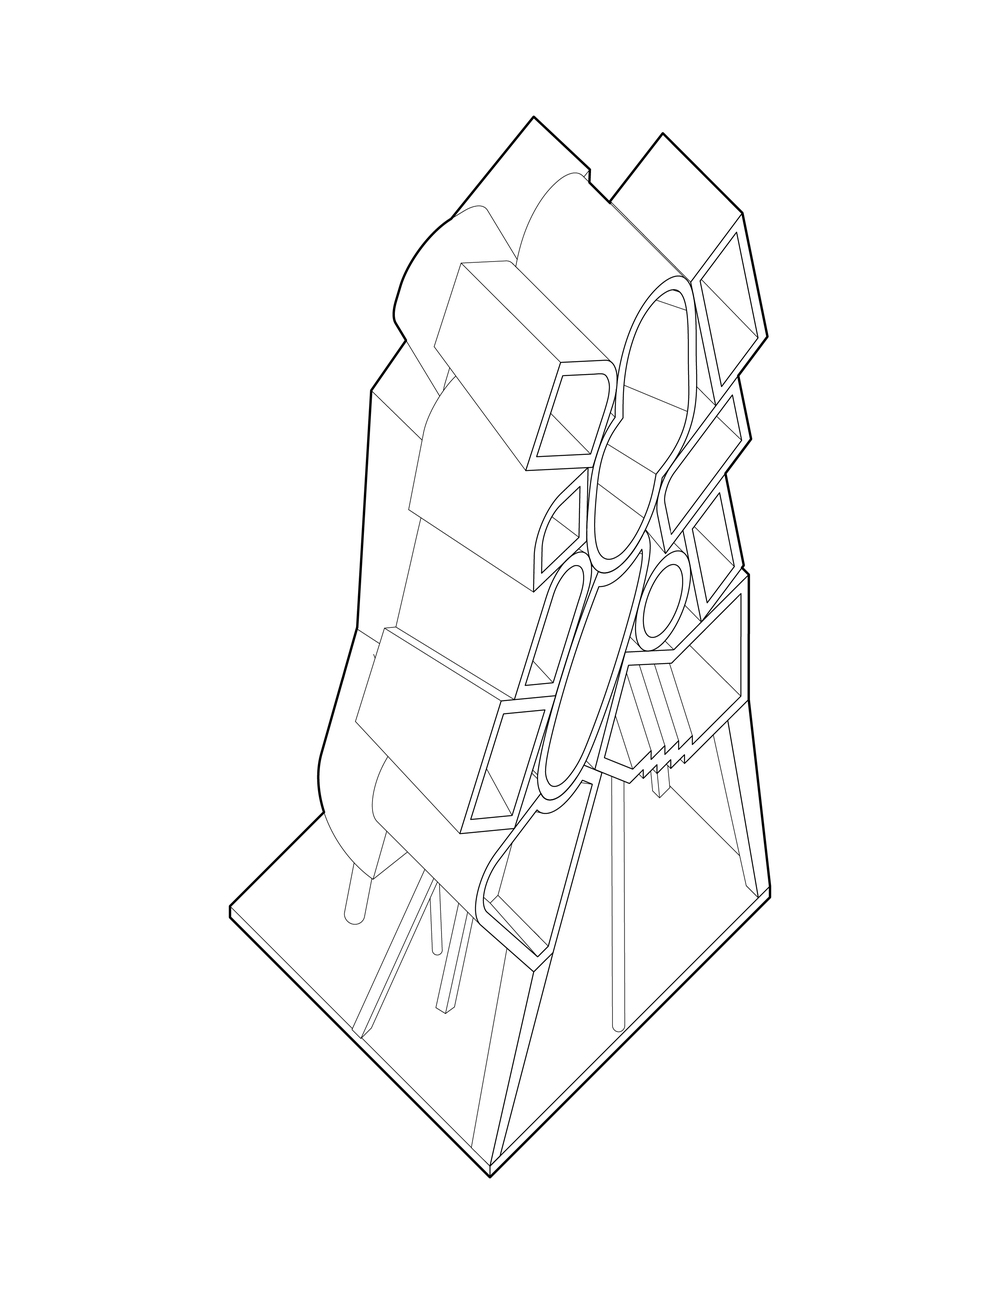 AXONOMETRIC [Converted]-01.jpg